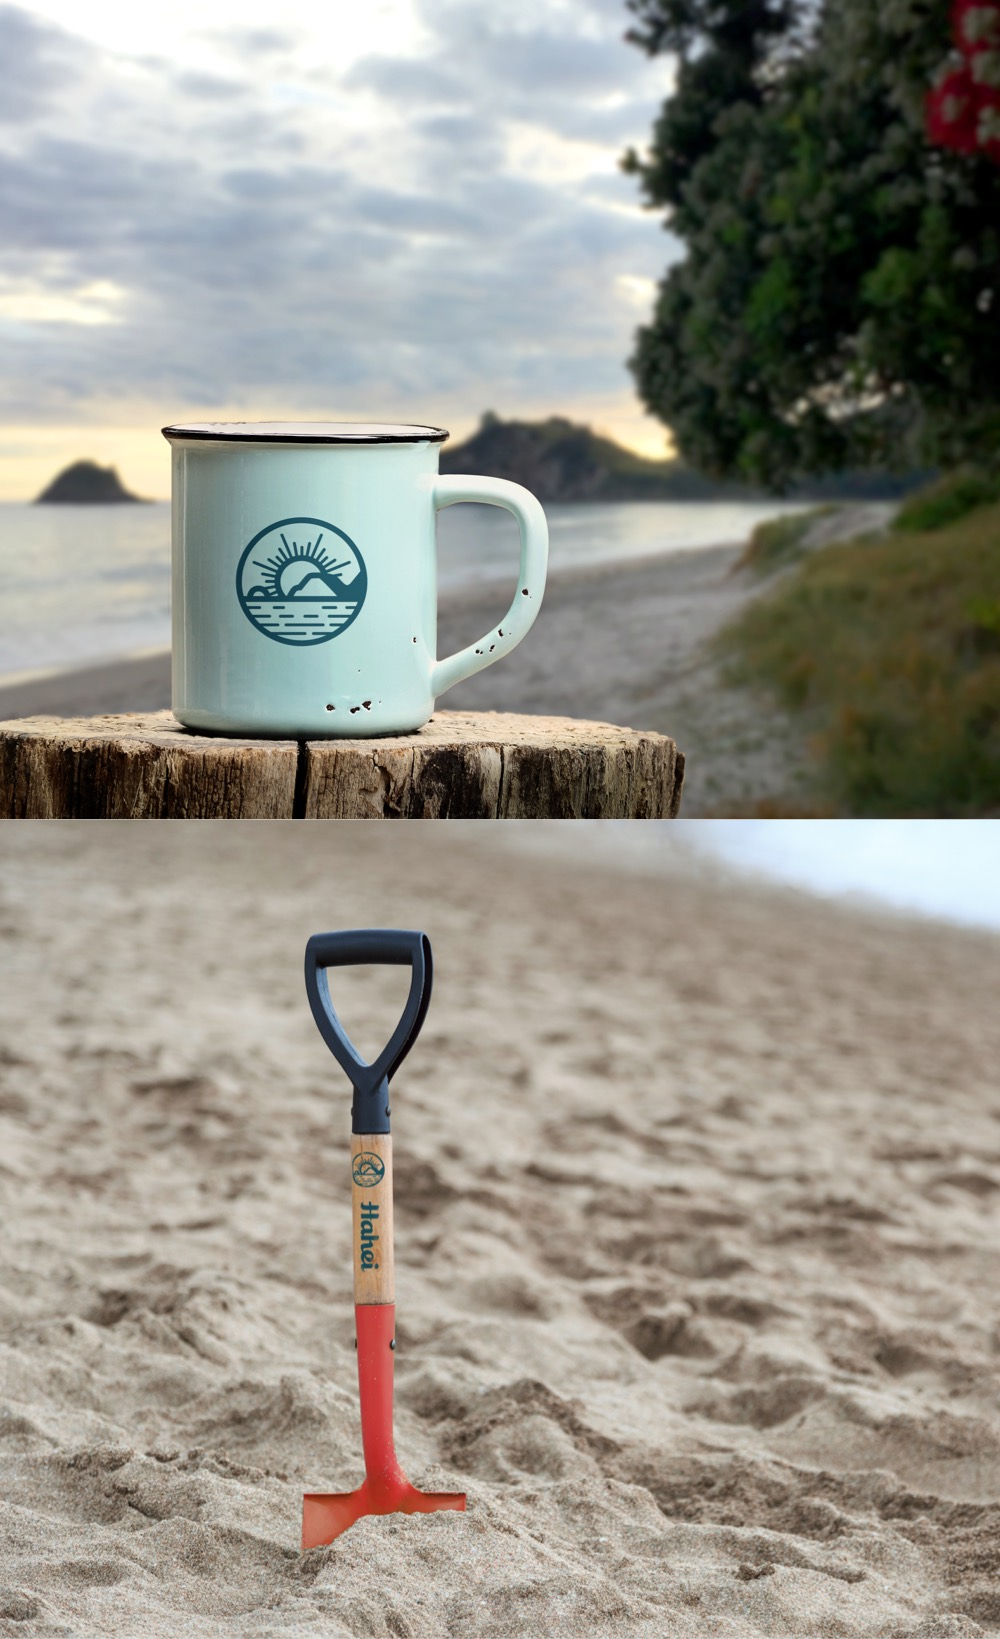 Hahei-logo-cup-and-shovel